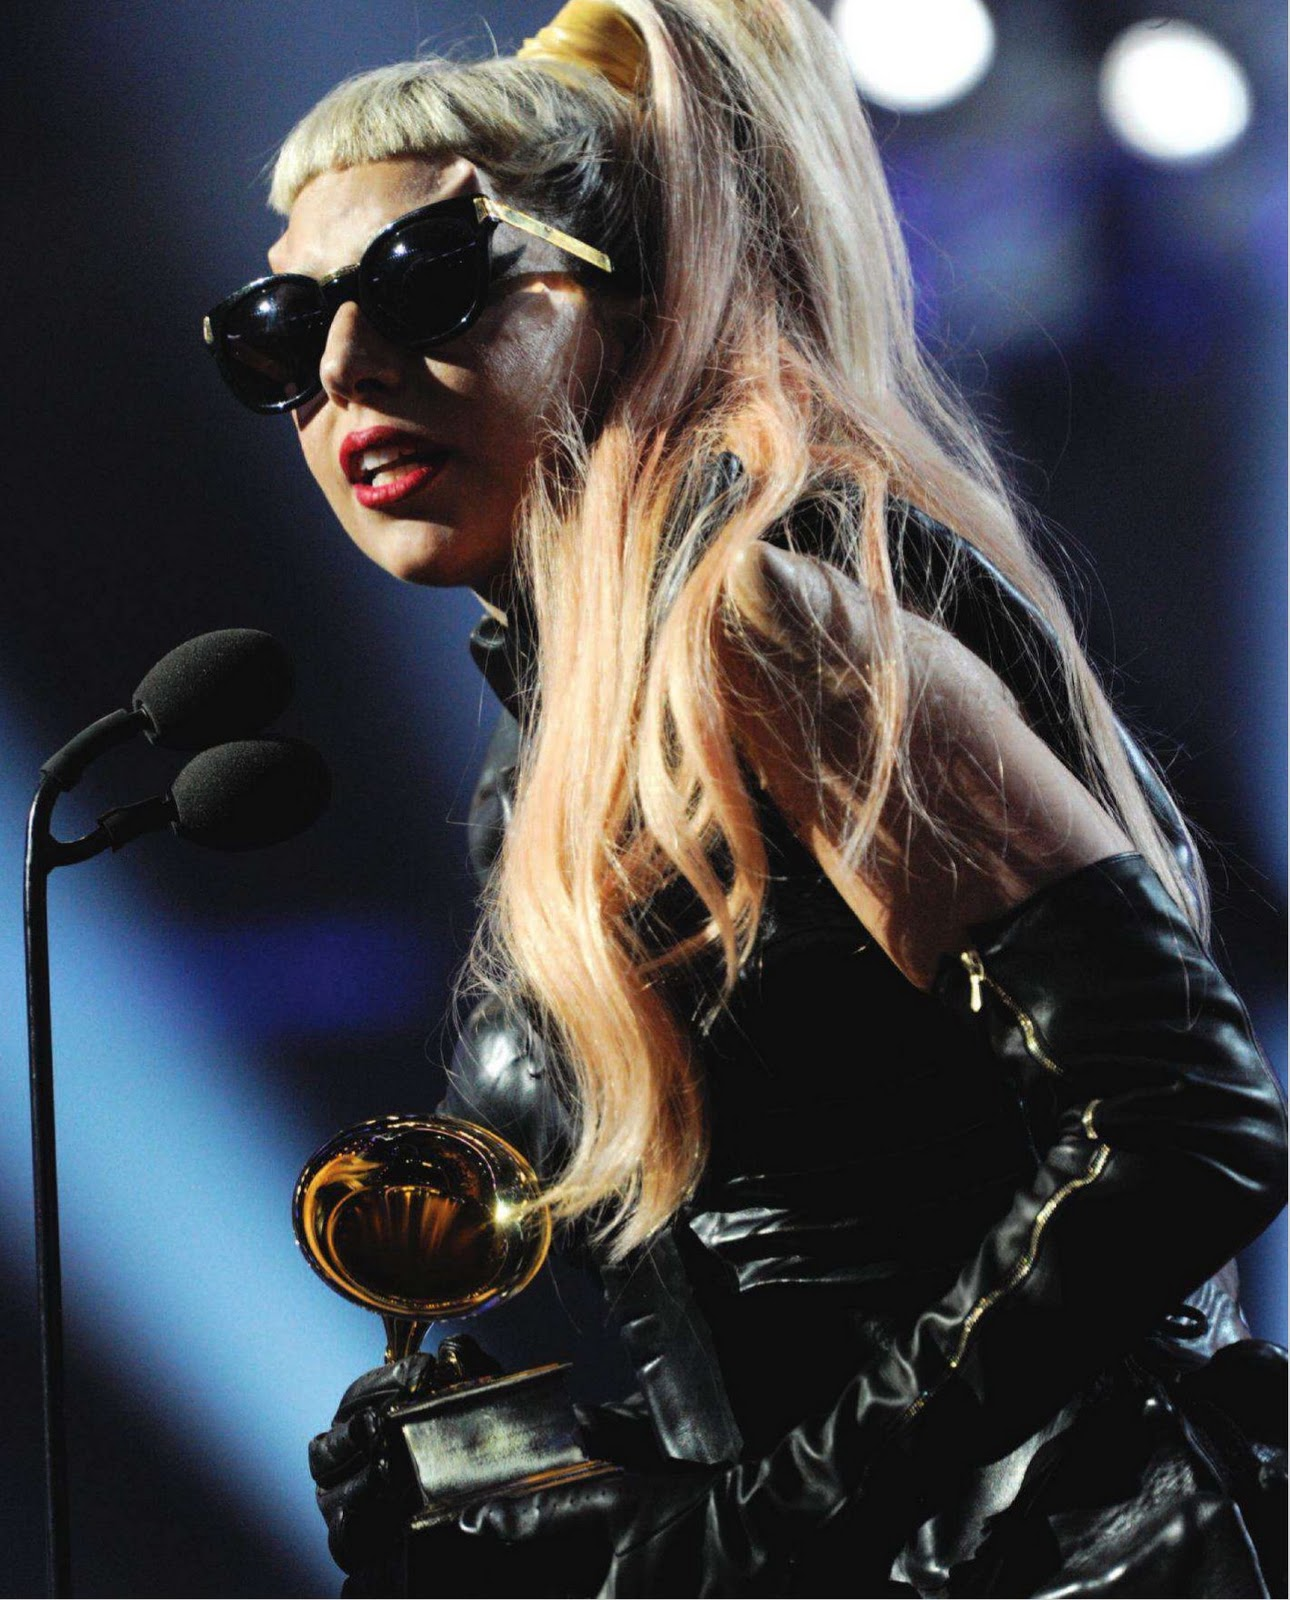 tour amanda balen, in may videos of the lady gaga Lady+gaga+amanda+balen